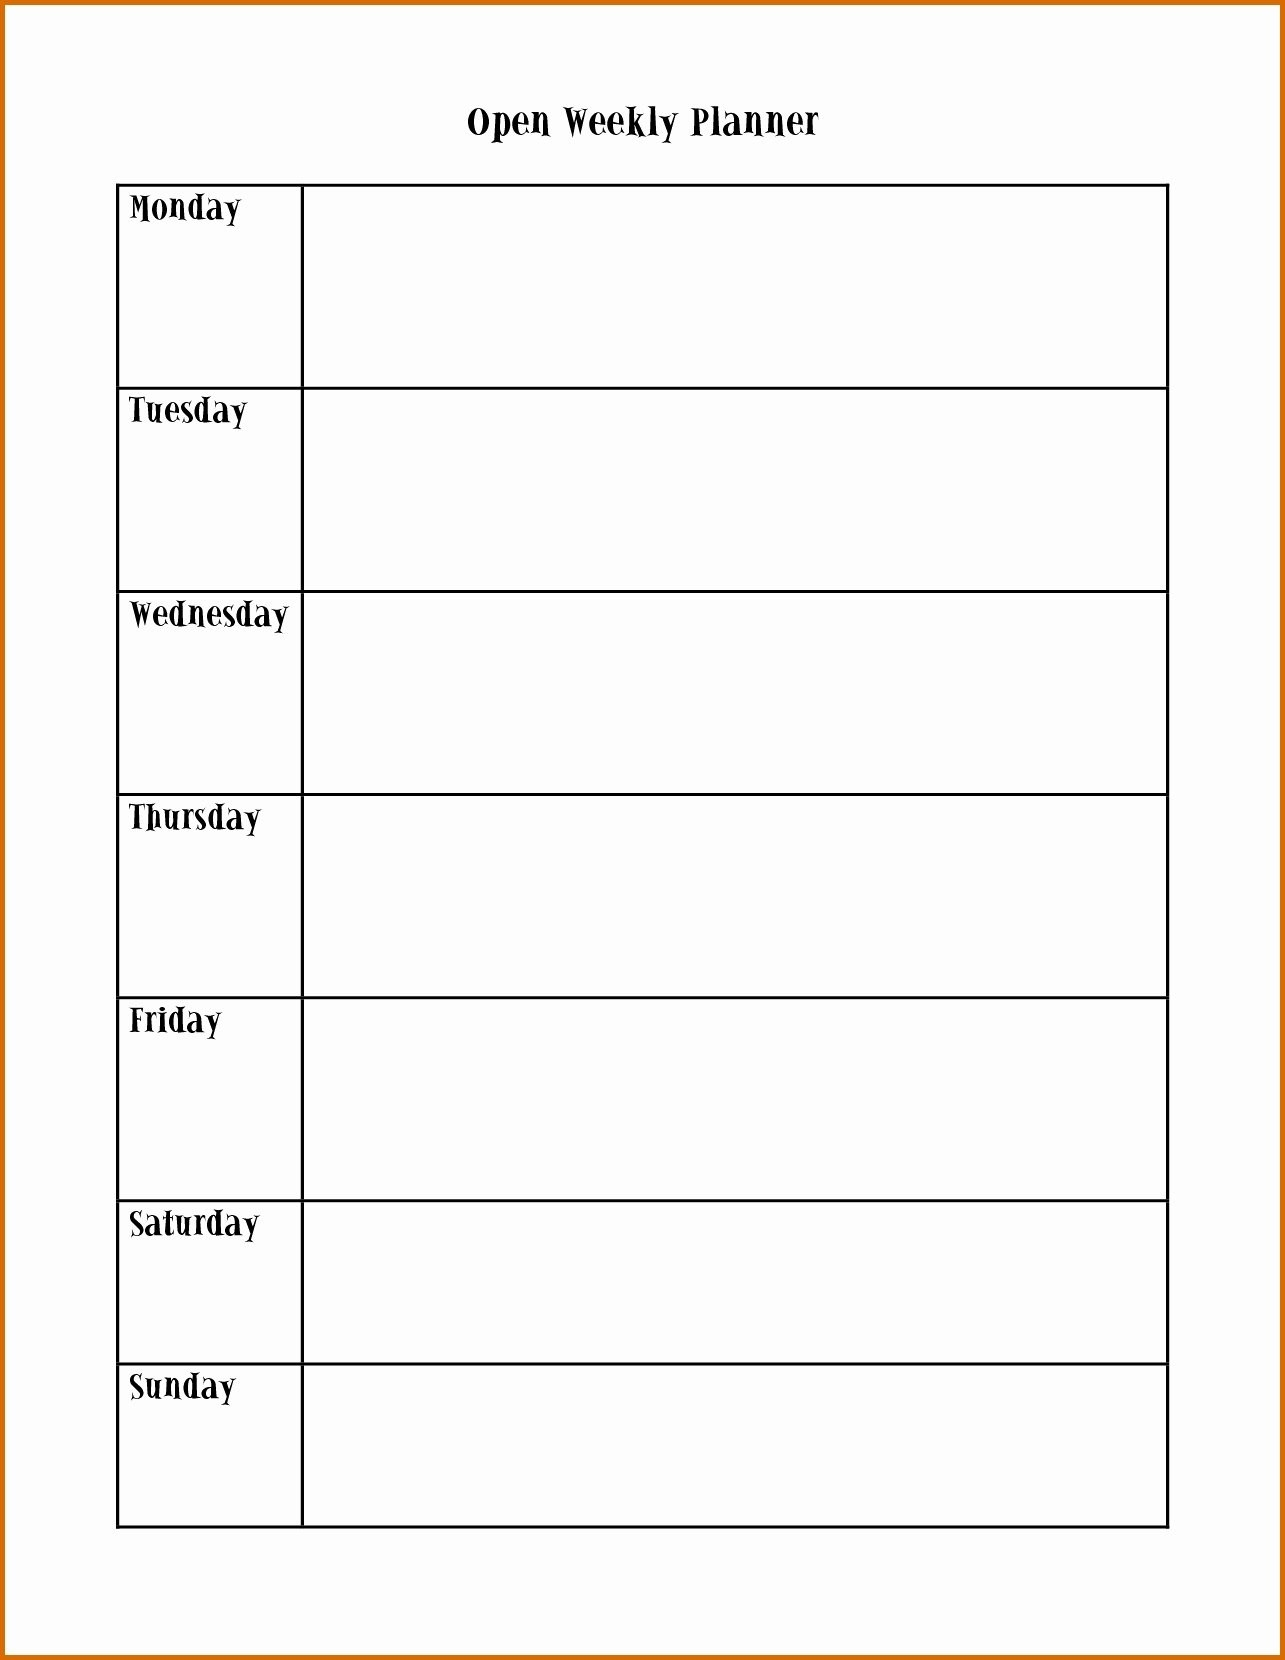 Monday To Friday Schedule Template | Wesleykimlerstudio-Monday Wednesday Friday Schedule Template